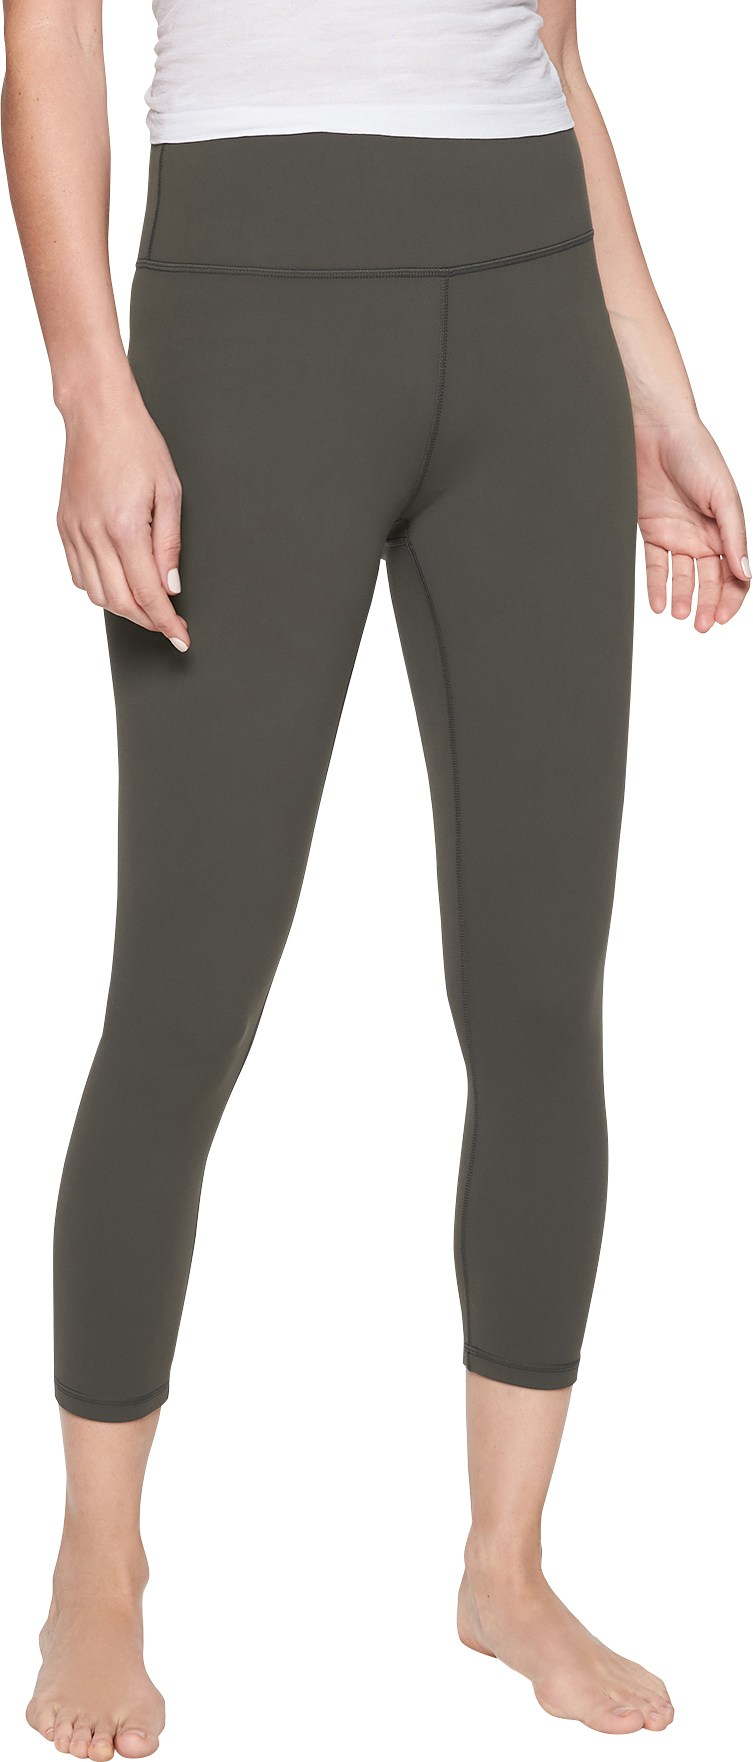 Athleta Elation Capri Leggings - Women's